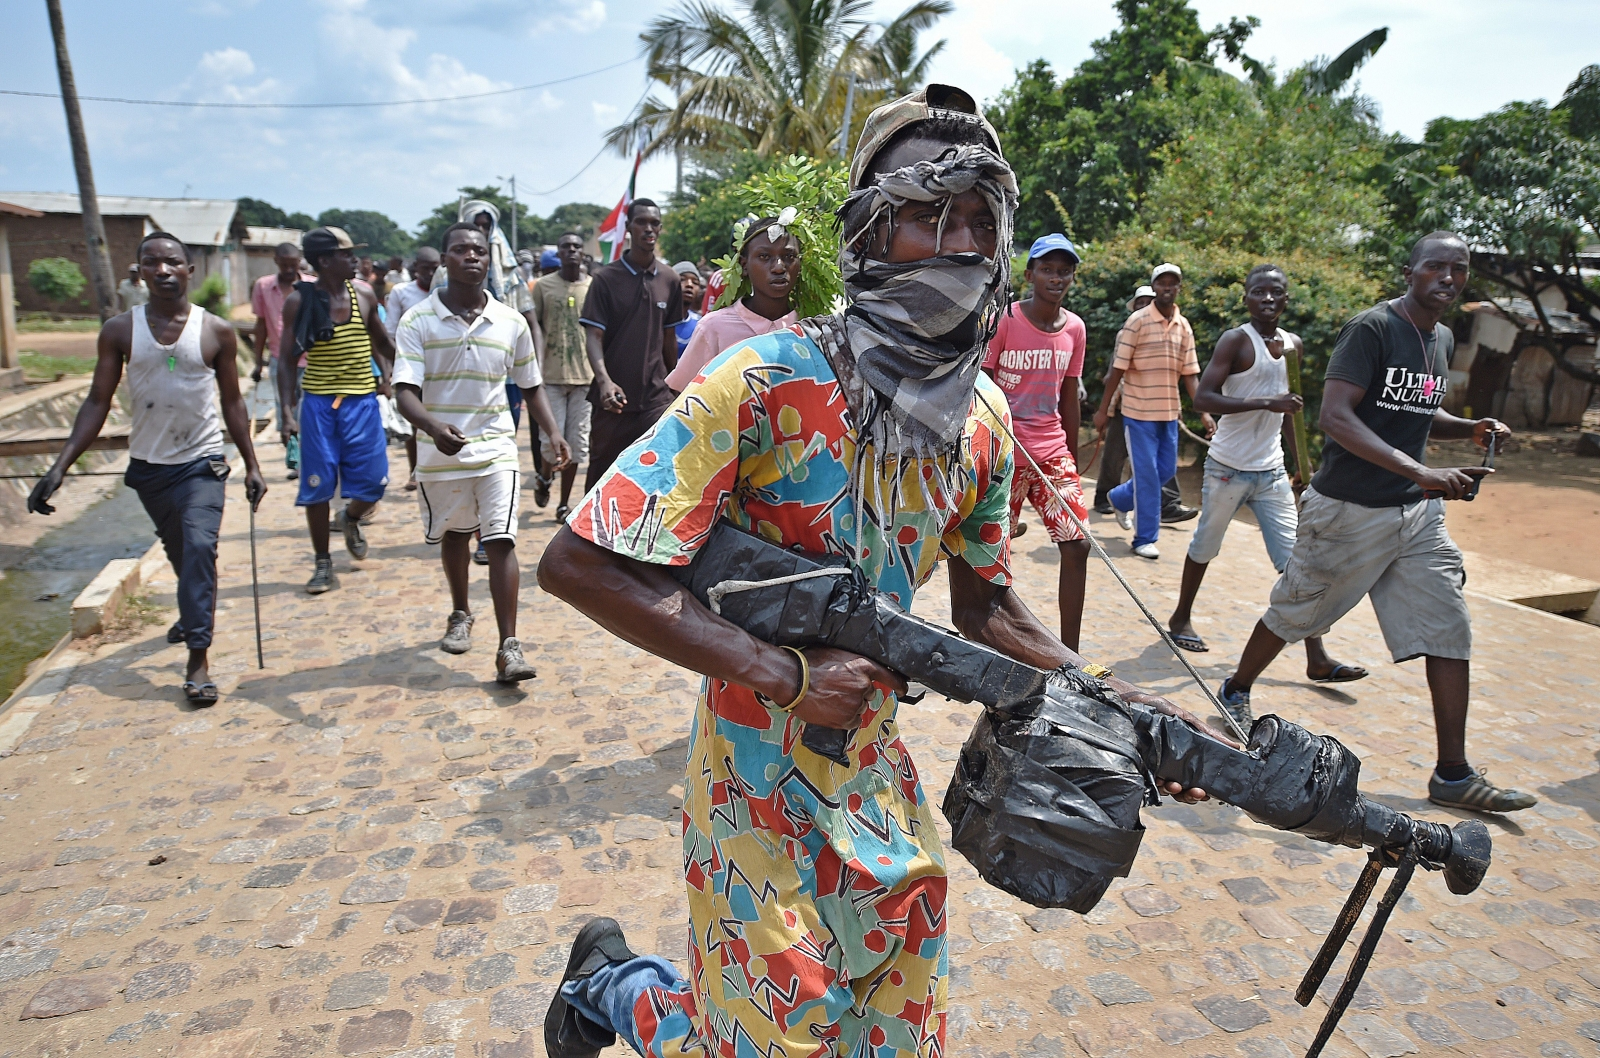 Burundi protests arms